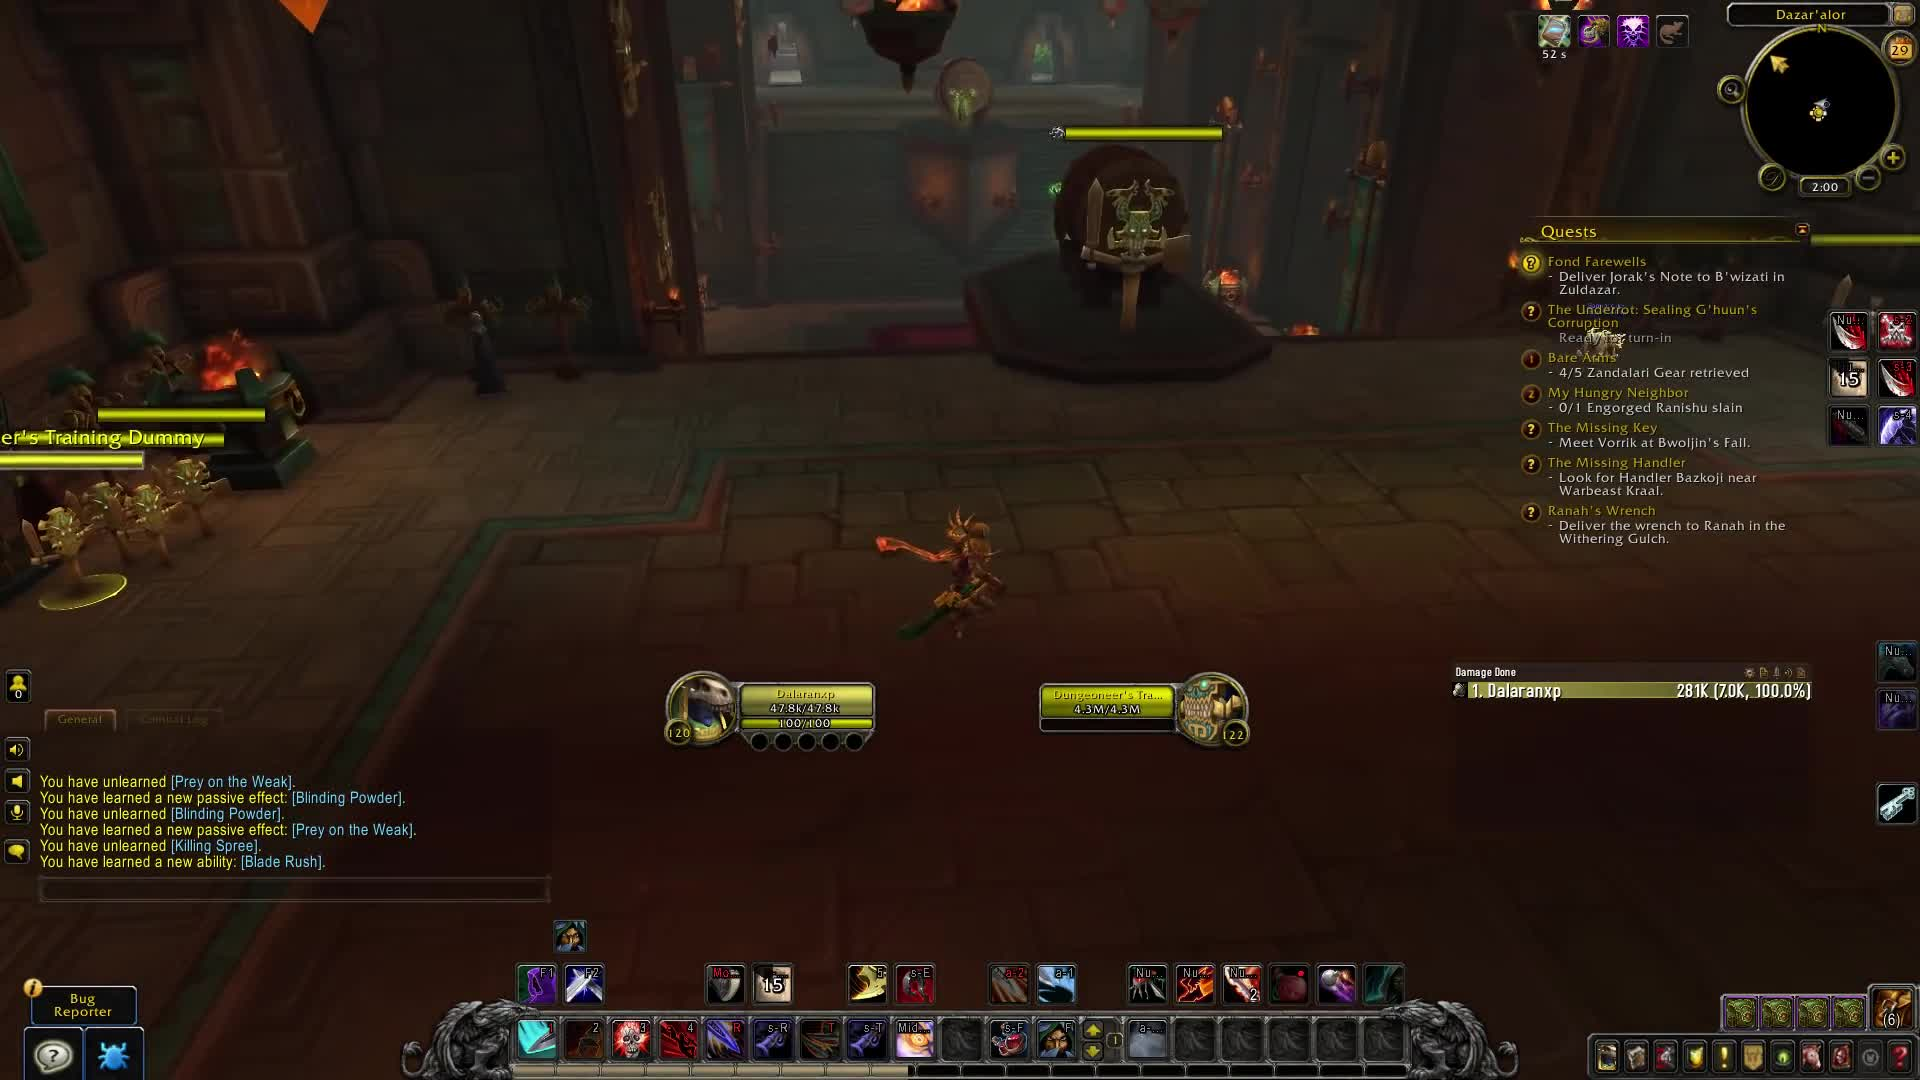 World Of Warcraft Gameplay Gifs Search | Search & Share on